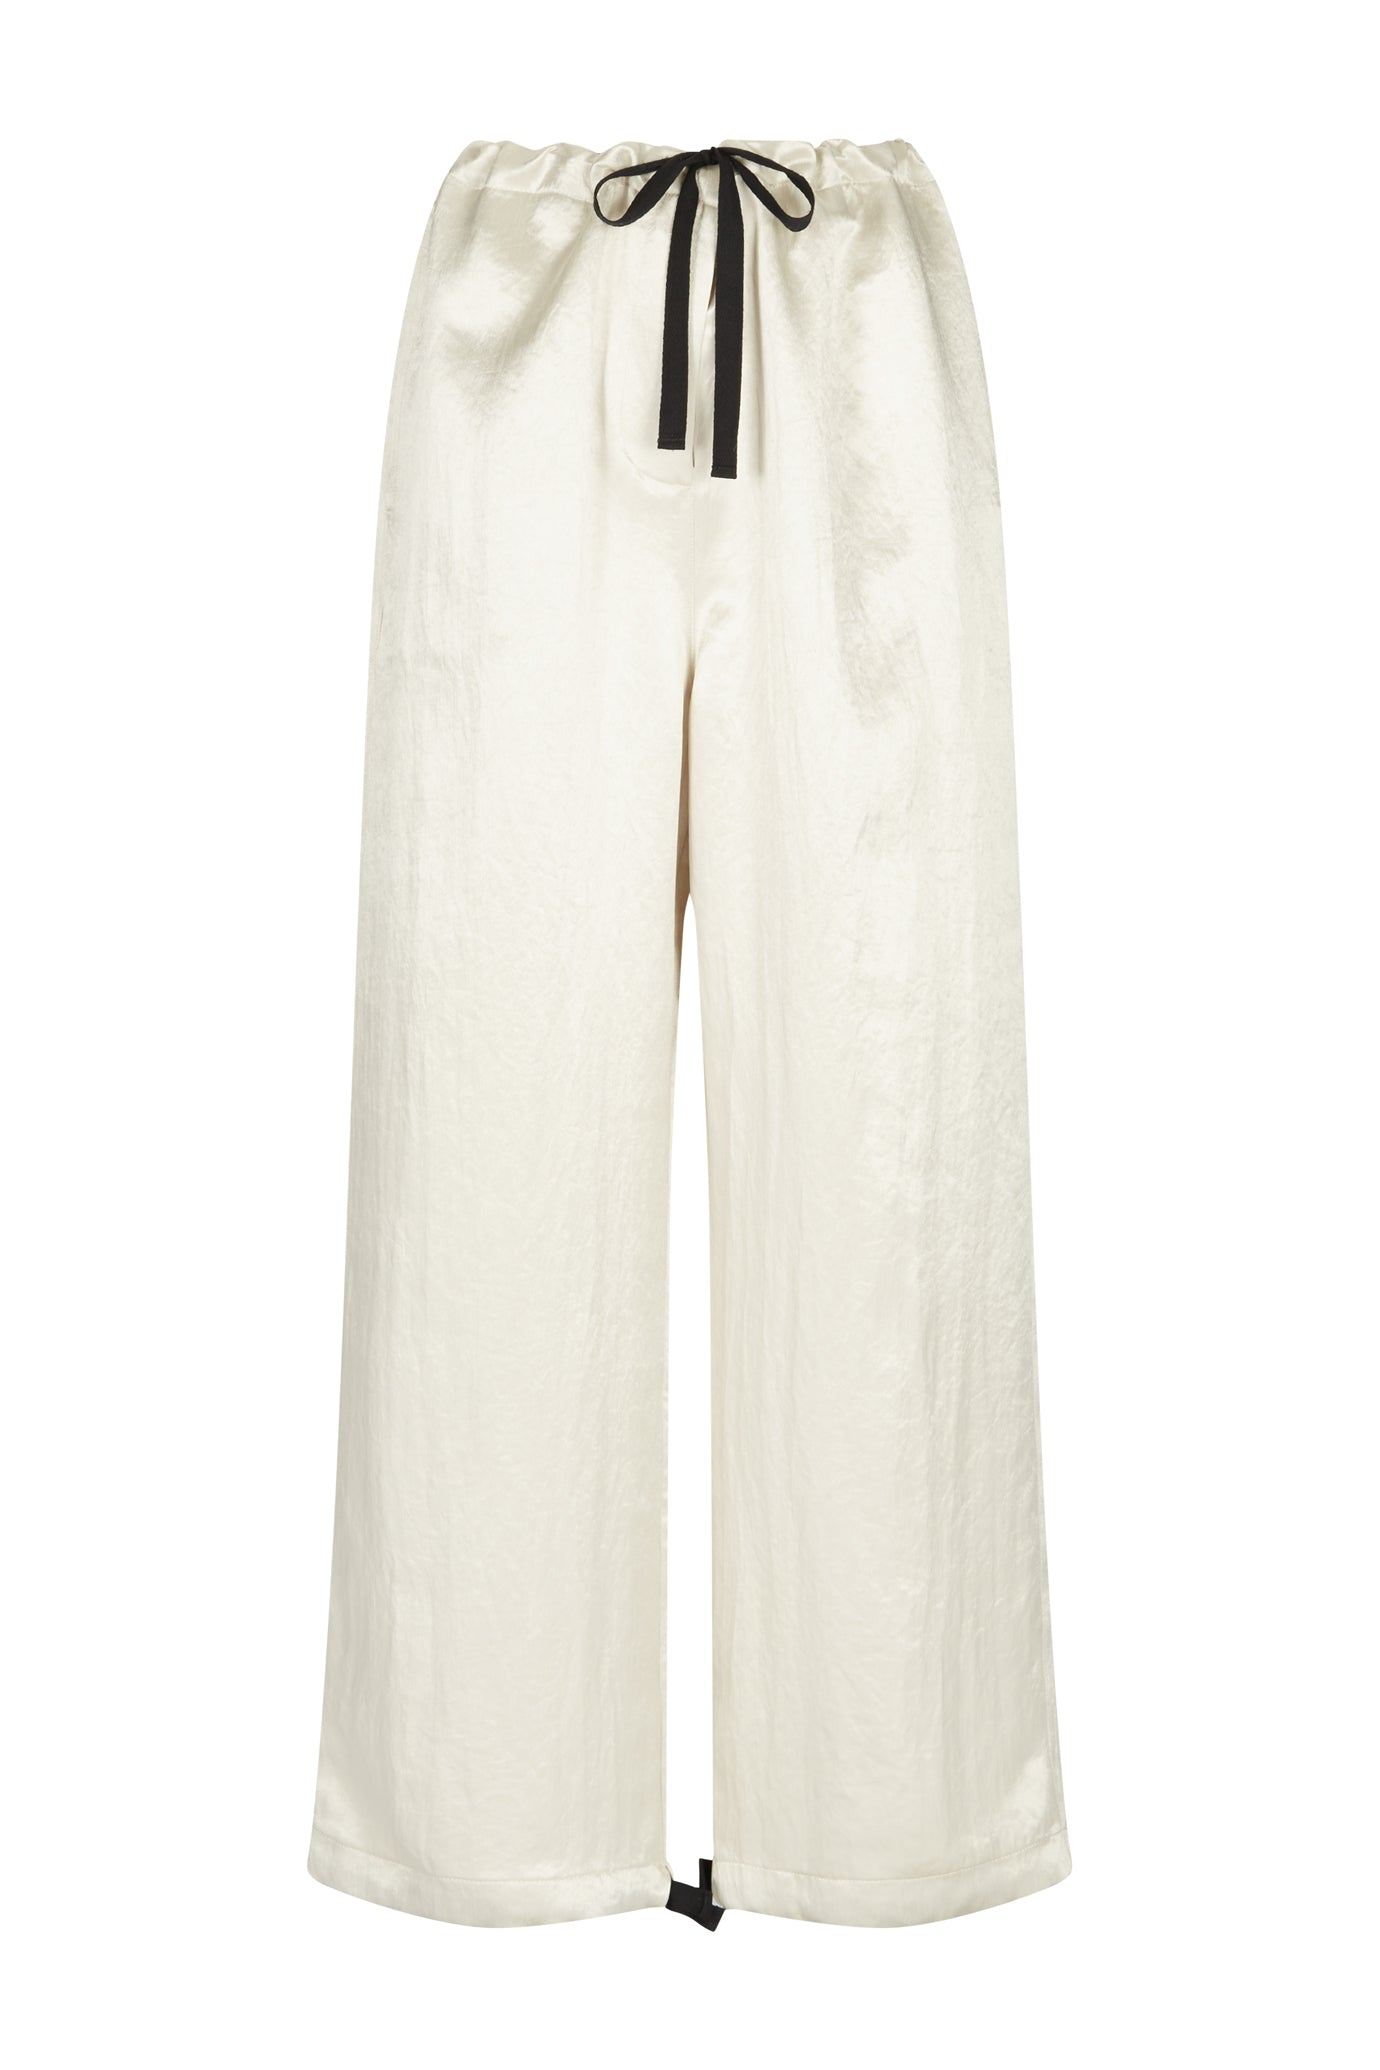 Lola cropped leg trouser stone natural fabric